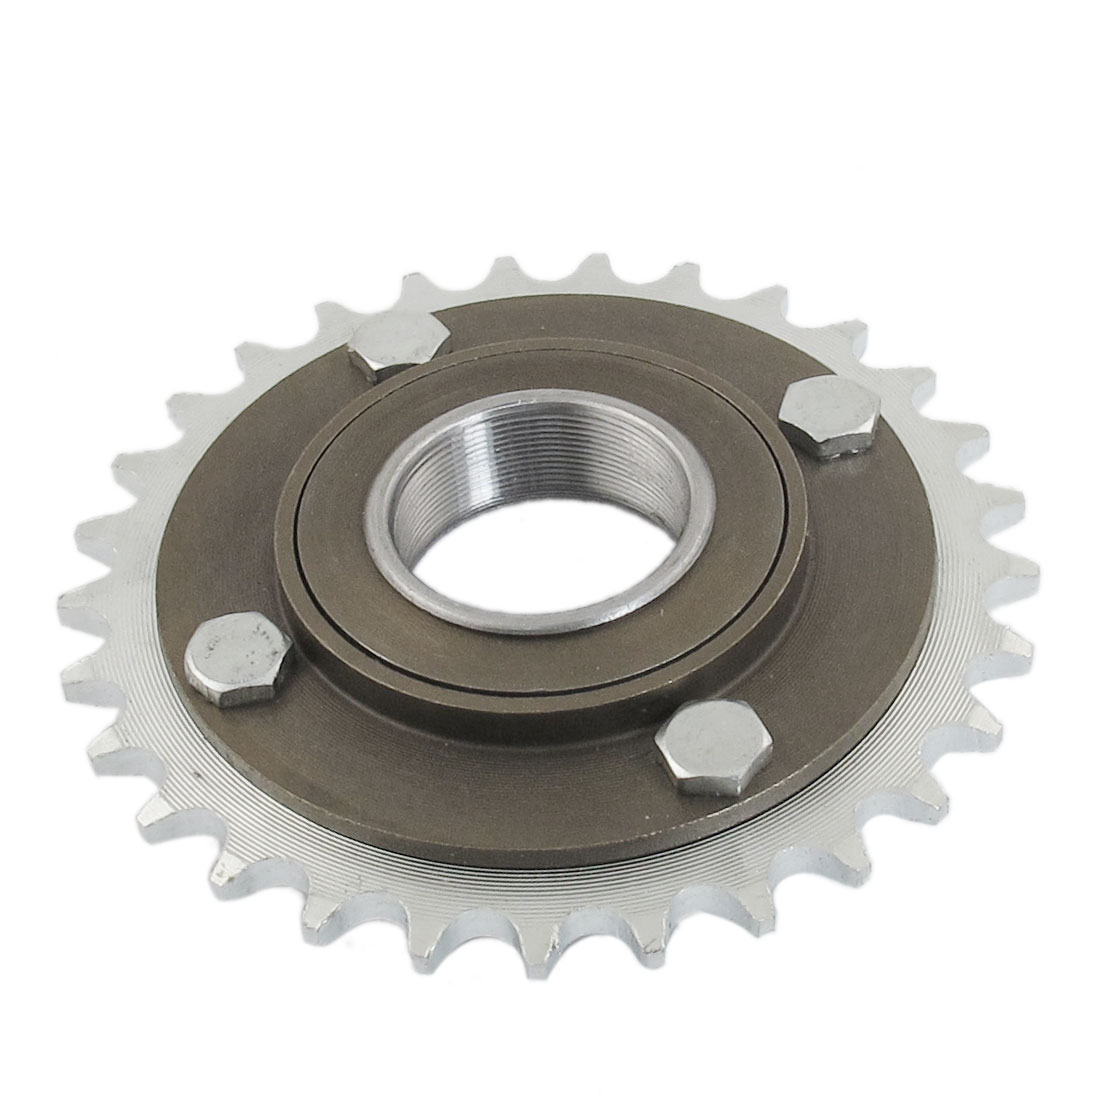 34mm Dia Bore 29 Teeth Simplex Roller Electric Tricycle Chain Drive Sprocket